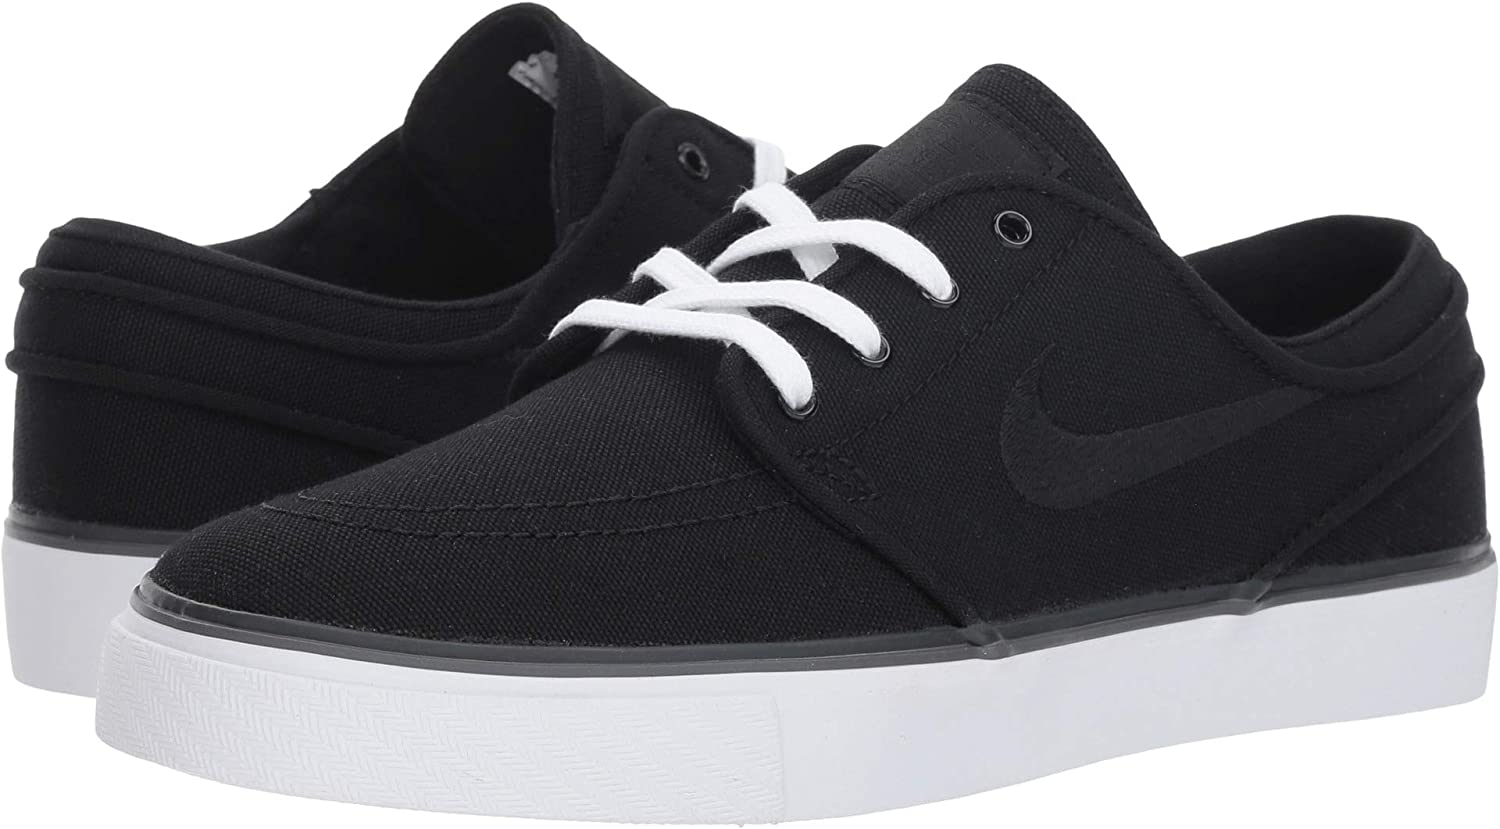 factory authentic the cheapest reputable site Amazon.com | Nike SB Women's Air Zoom Stefan Janoski Canvas ...